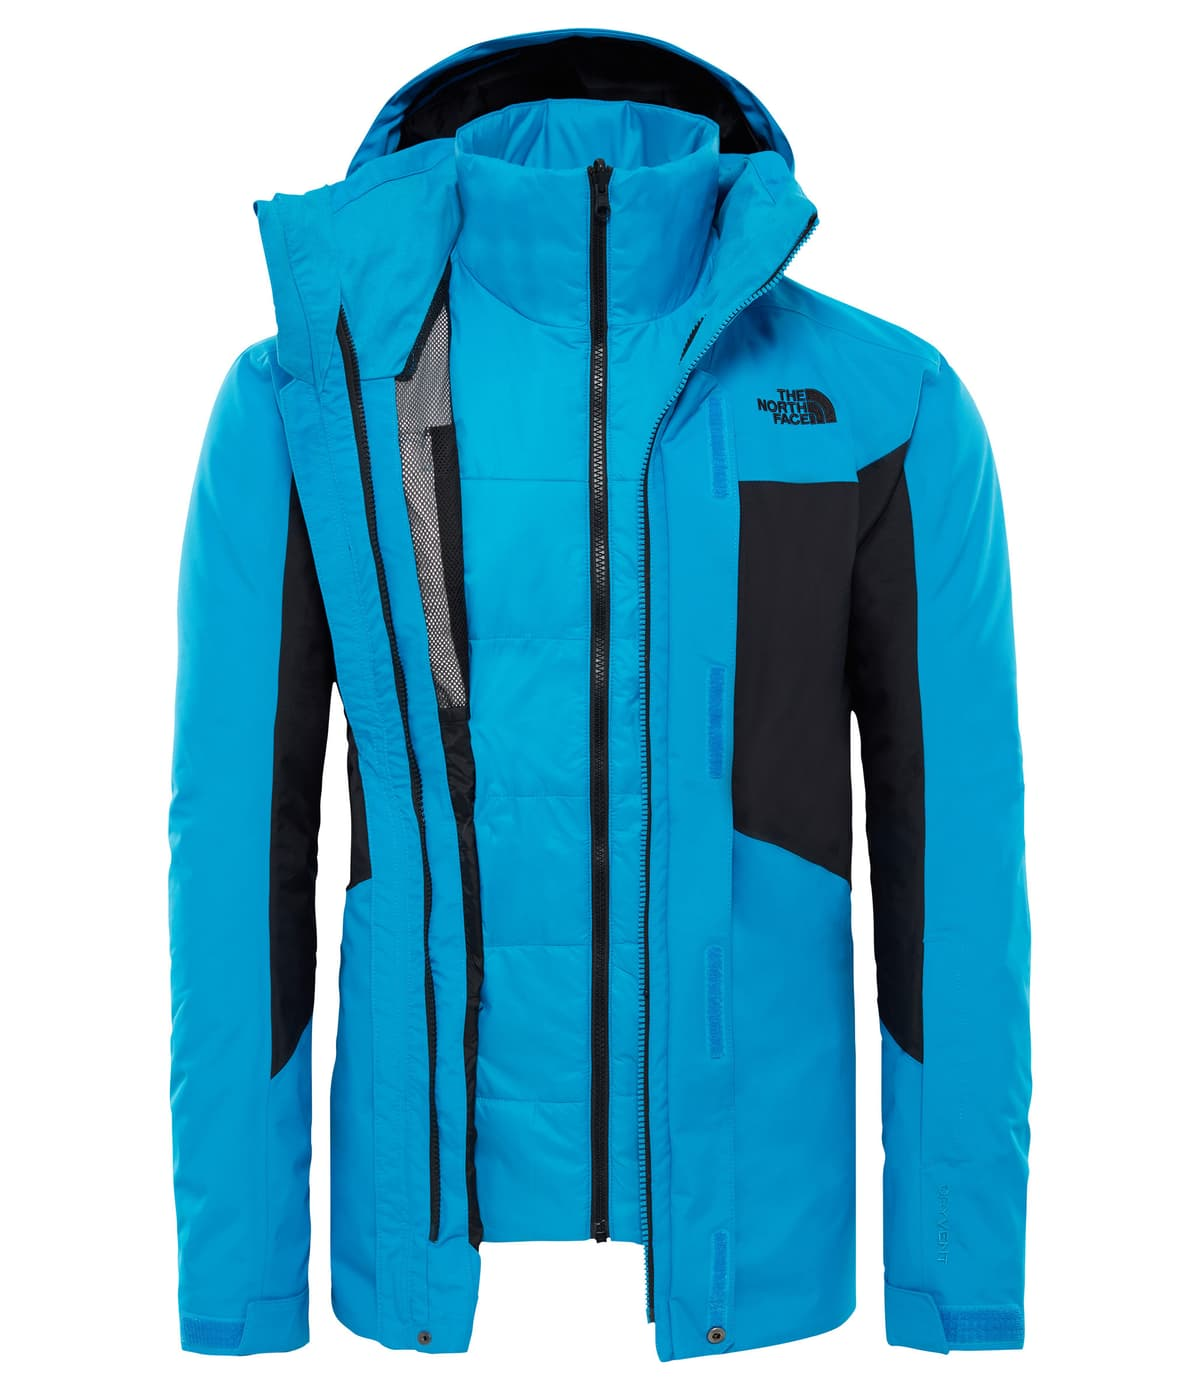 977bbbd2fe the-north-face-clement-triclimate-jacket-herren-skijacke.jpg